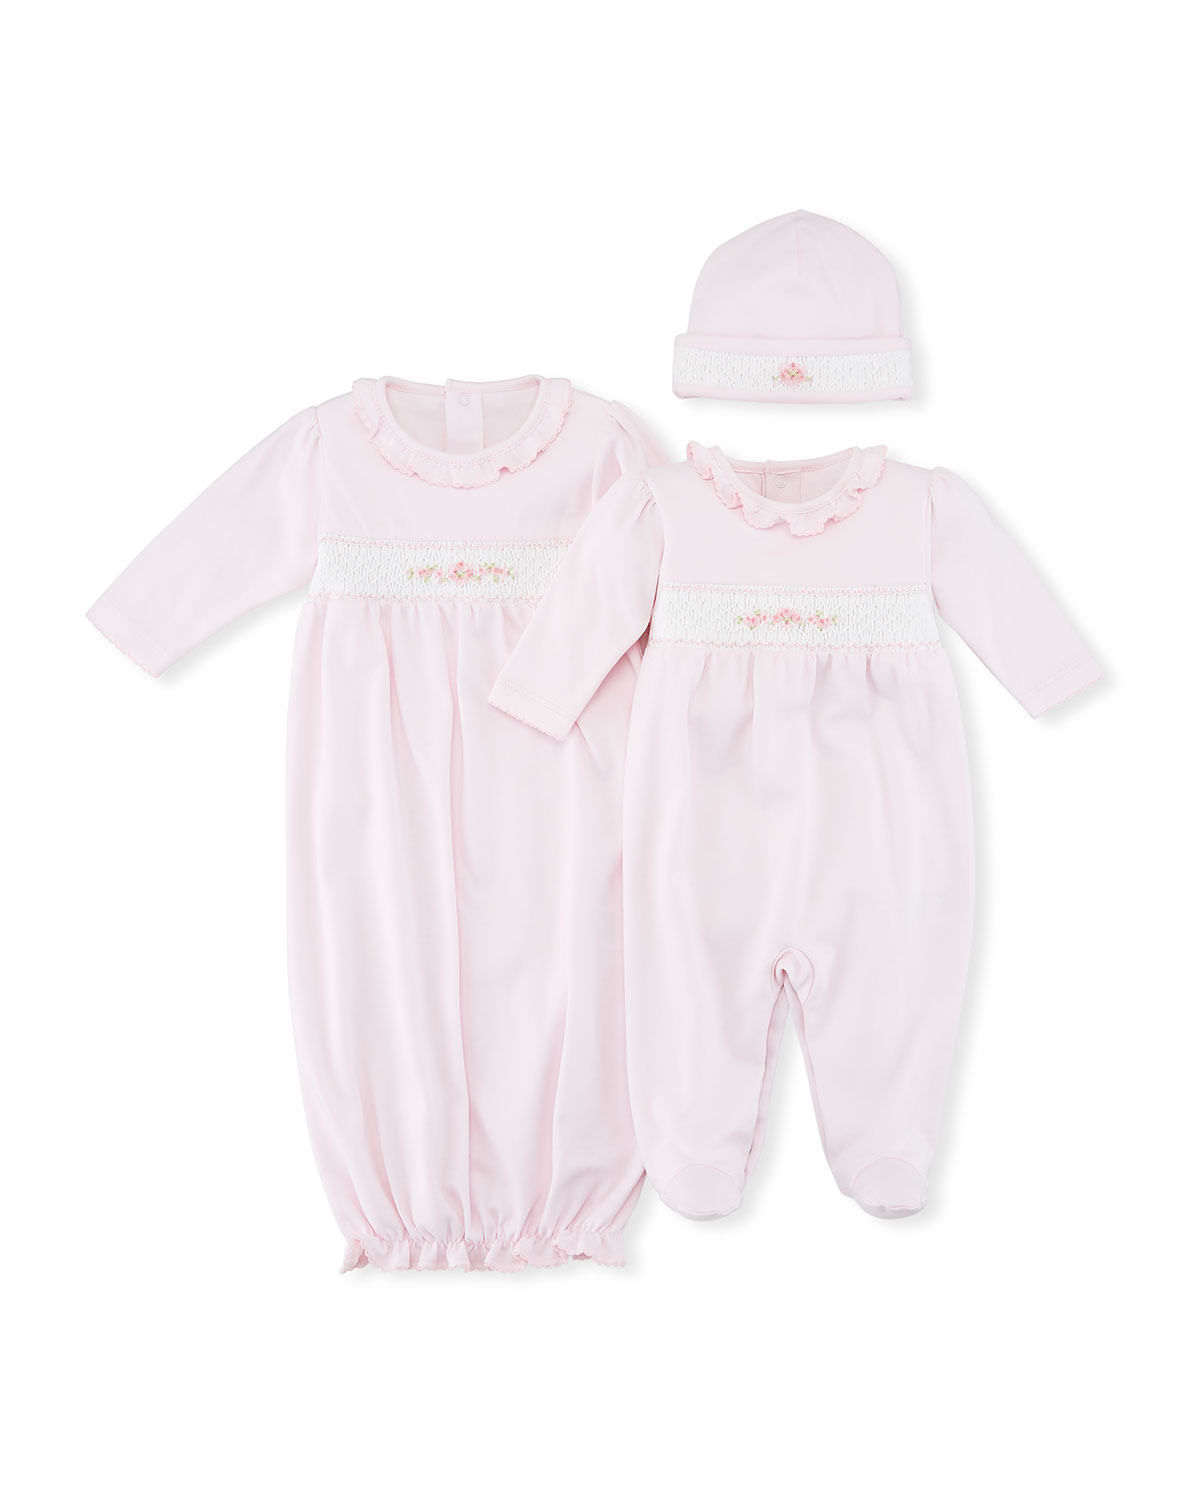 CLB Summer Medley Smocked Footie Playsuit, Size Newborn-9M